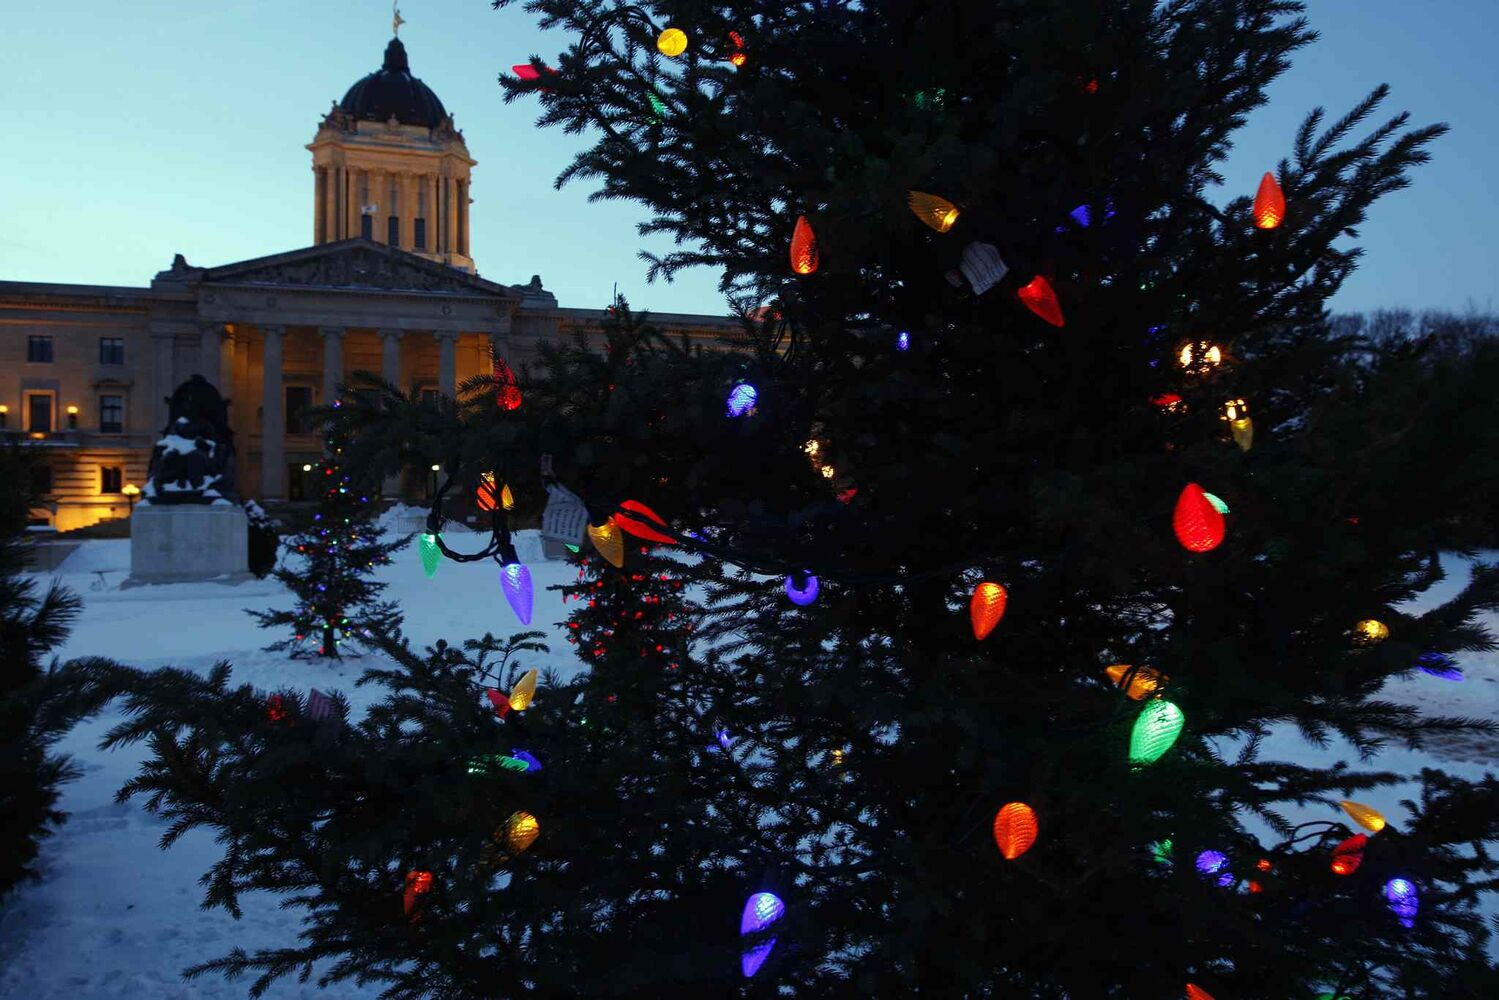 The legislature glows at Christmas. (Ken Gigliotti / Winnipeg Free Press archives)